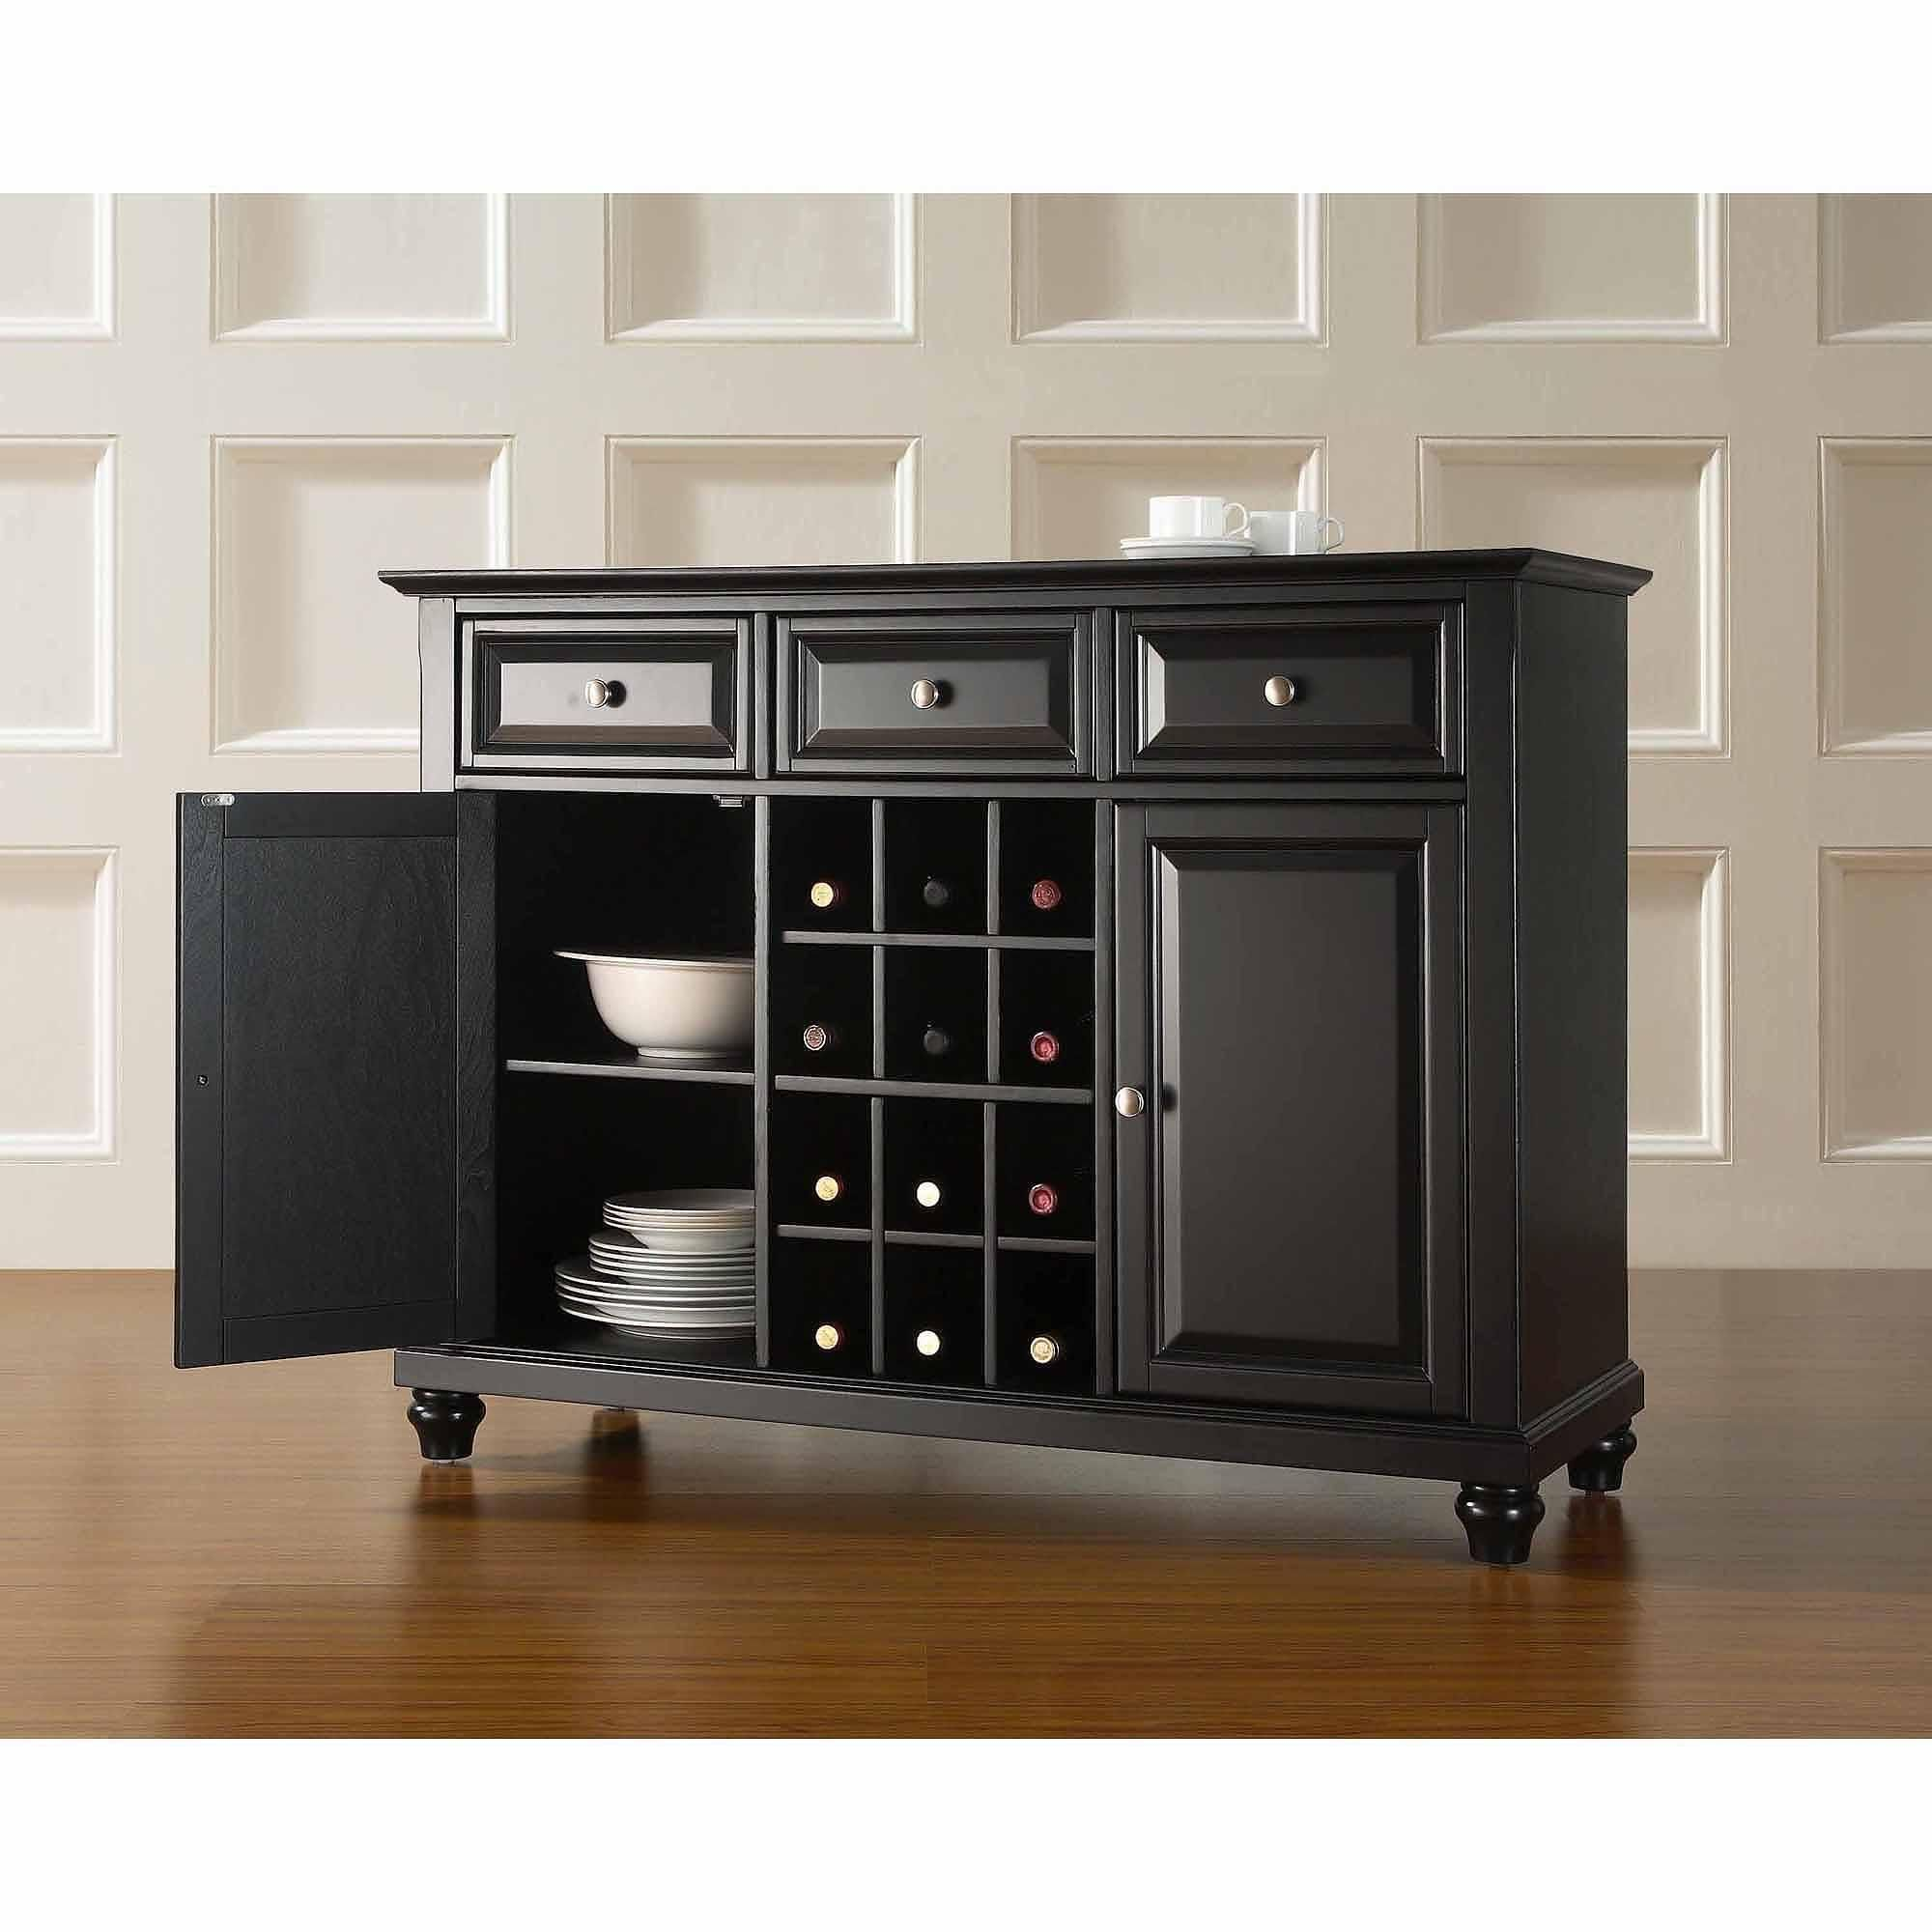 dining room sideboards and buffets. Crosley LaFayette Buffet Server / Sideboard Cabinet In Black-dining Room Dining Sideboards And Buffets C